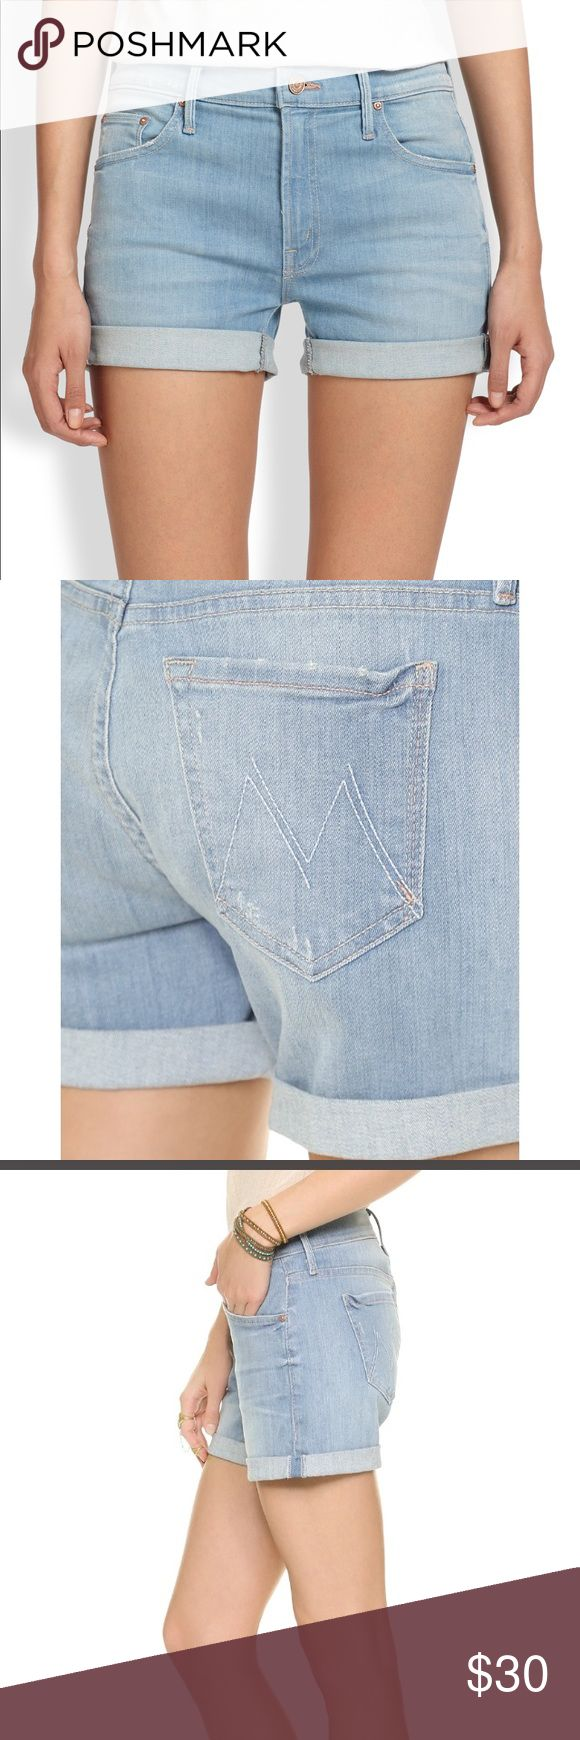 Mother Dropout cuff short beach house #9 Light denim shorts with roll up cuffs. Made of very soft denim! These shorts are very comfy and flattering...perfect for the beach! MOTHER Shorts Jean Shorts